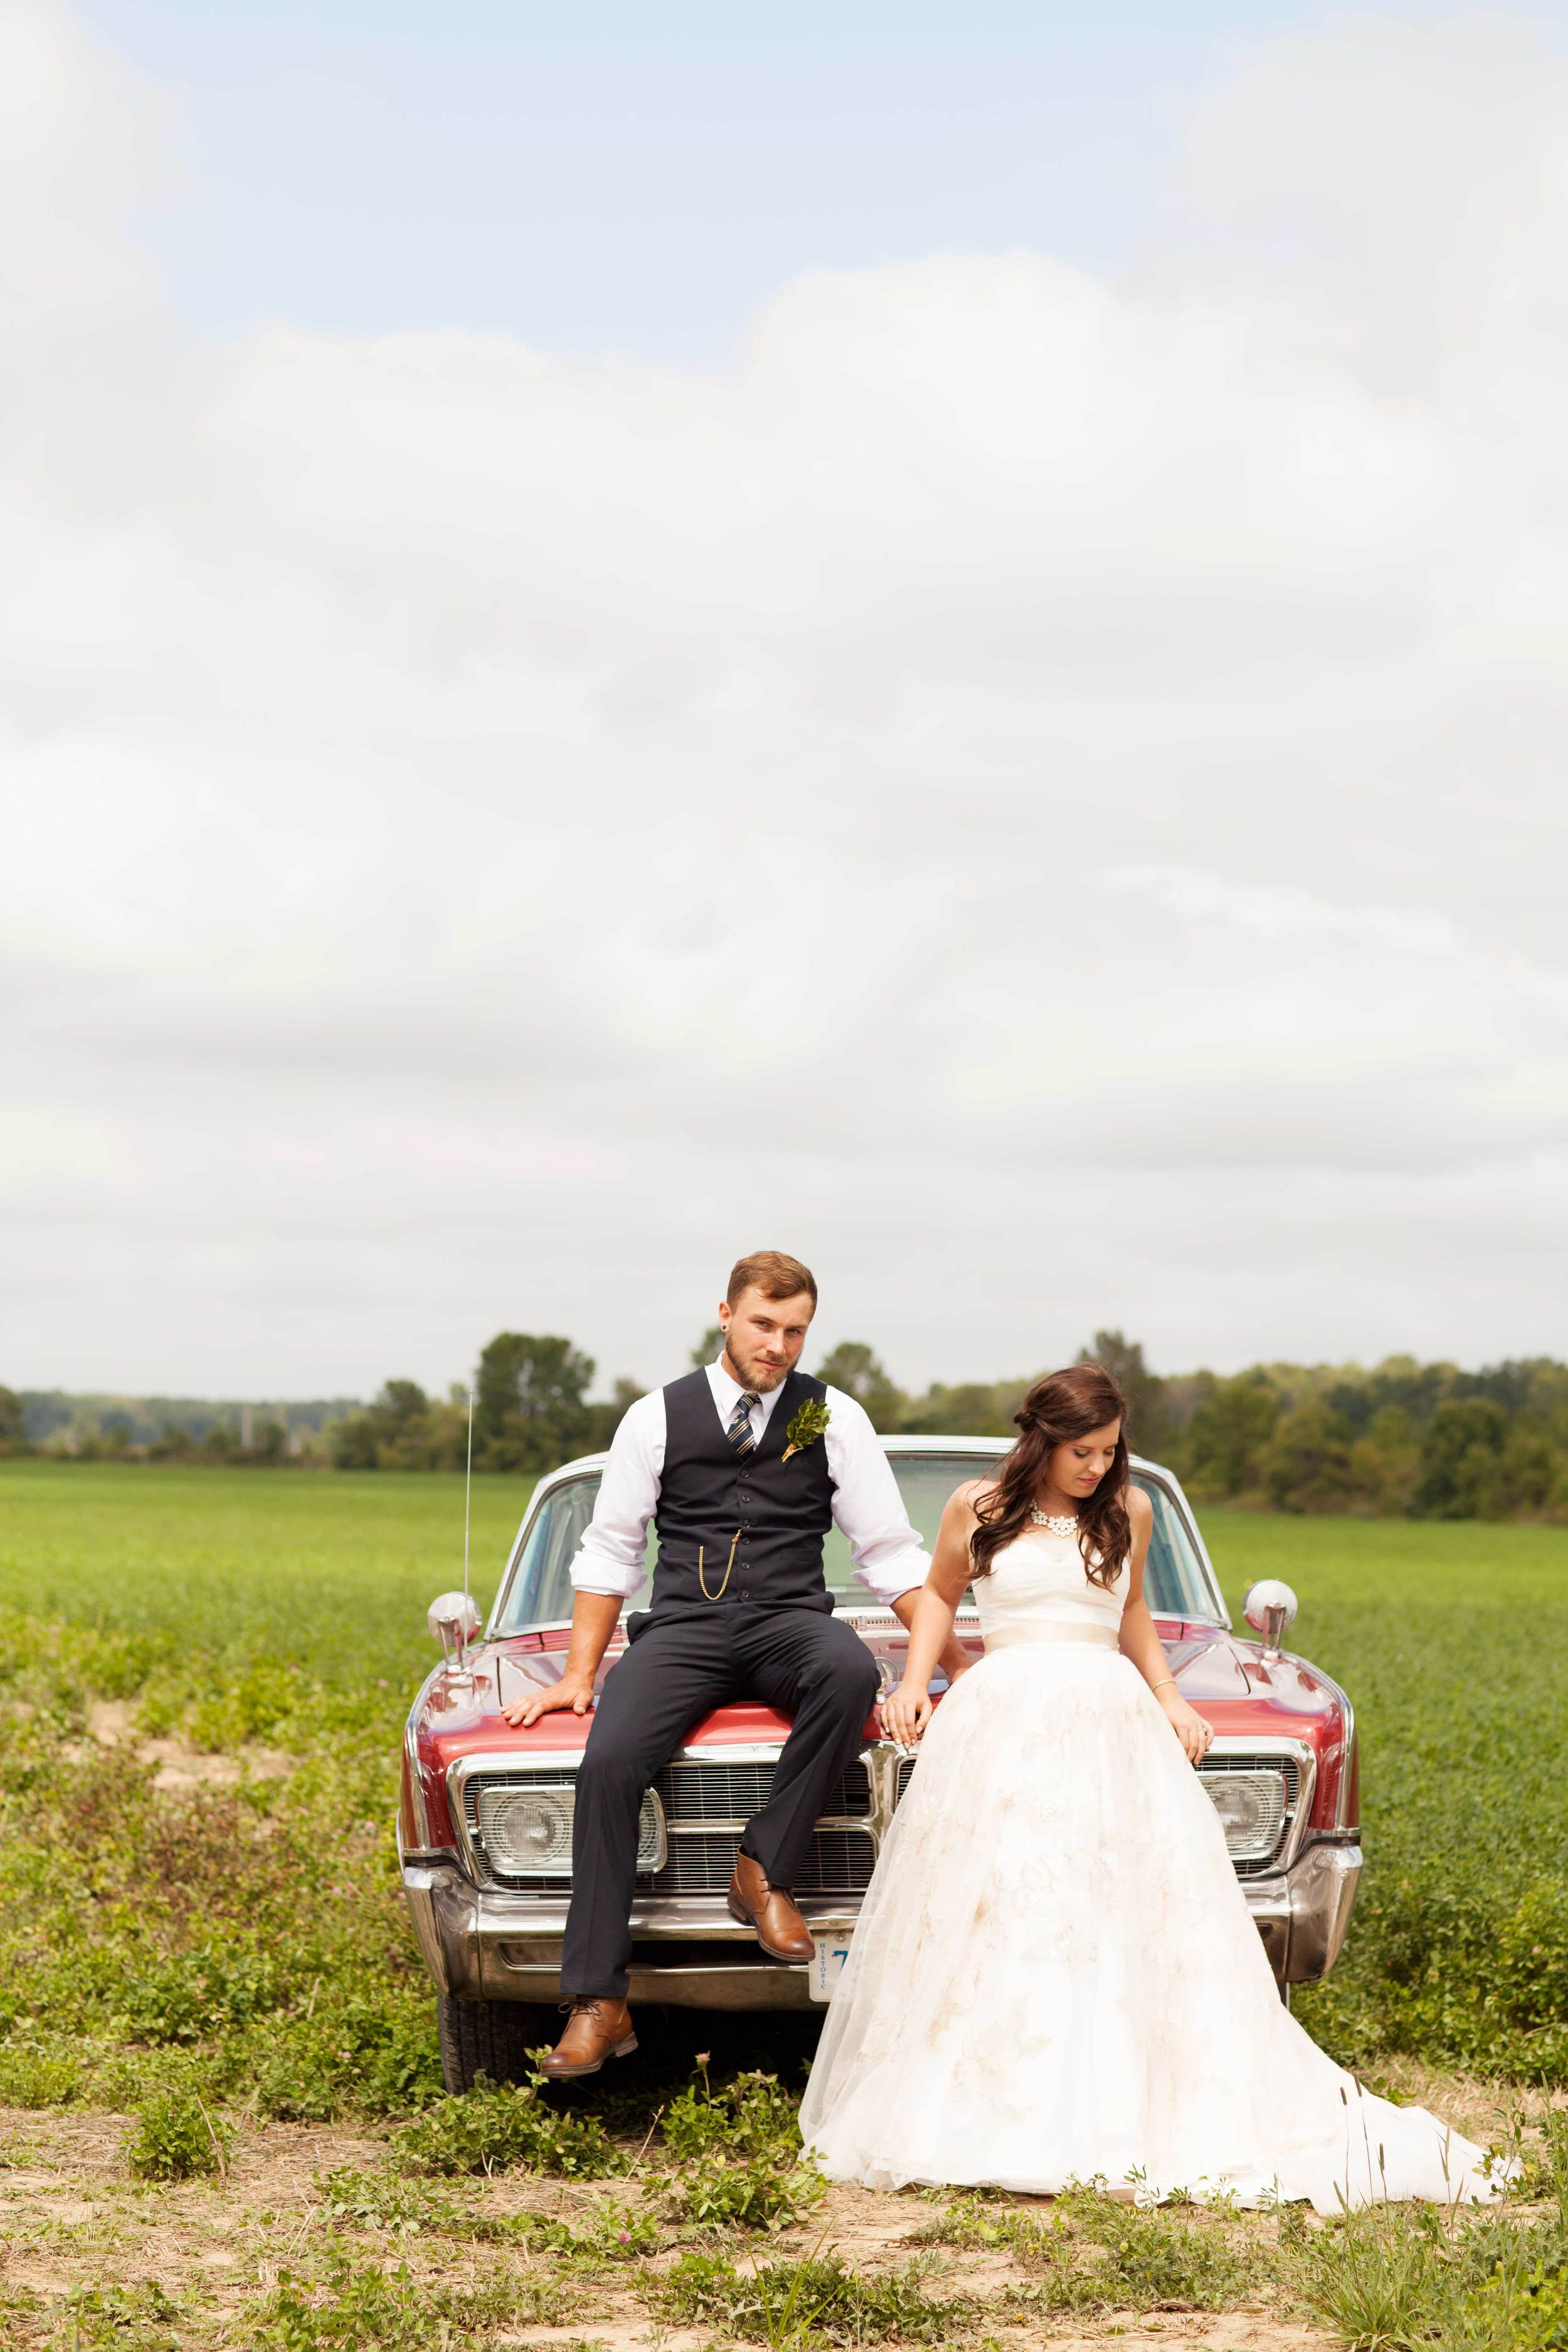 Justin-&-Jenna-Married-265.jpg